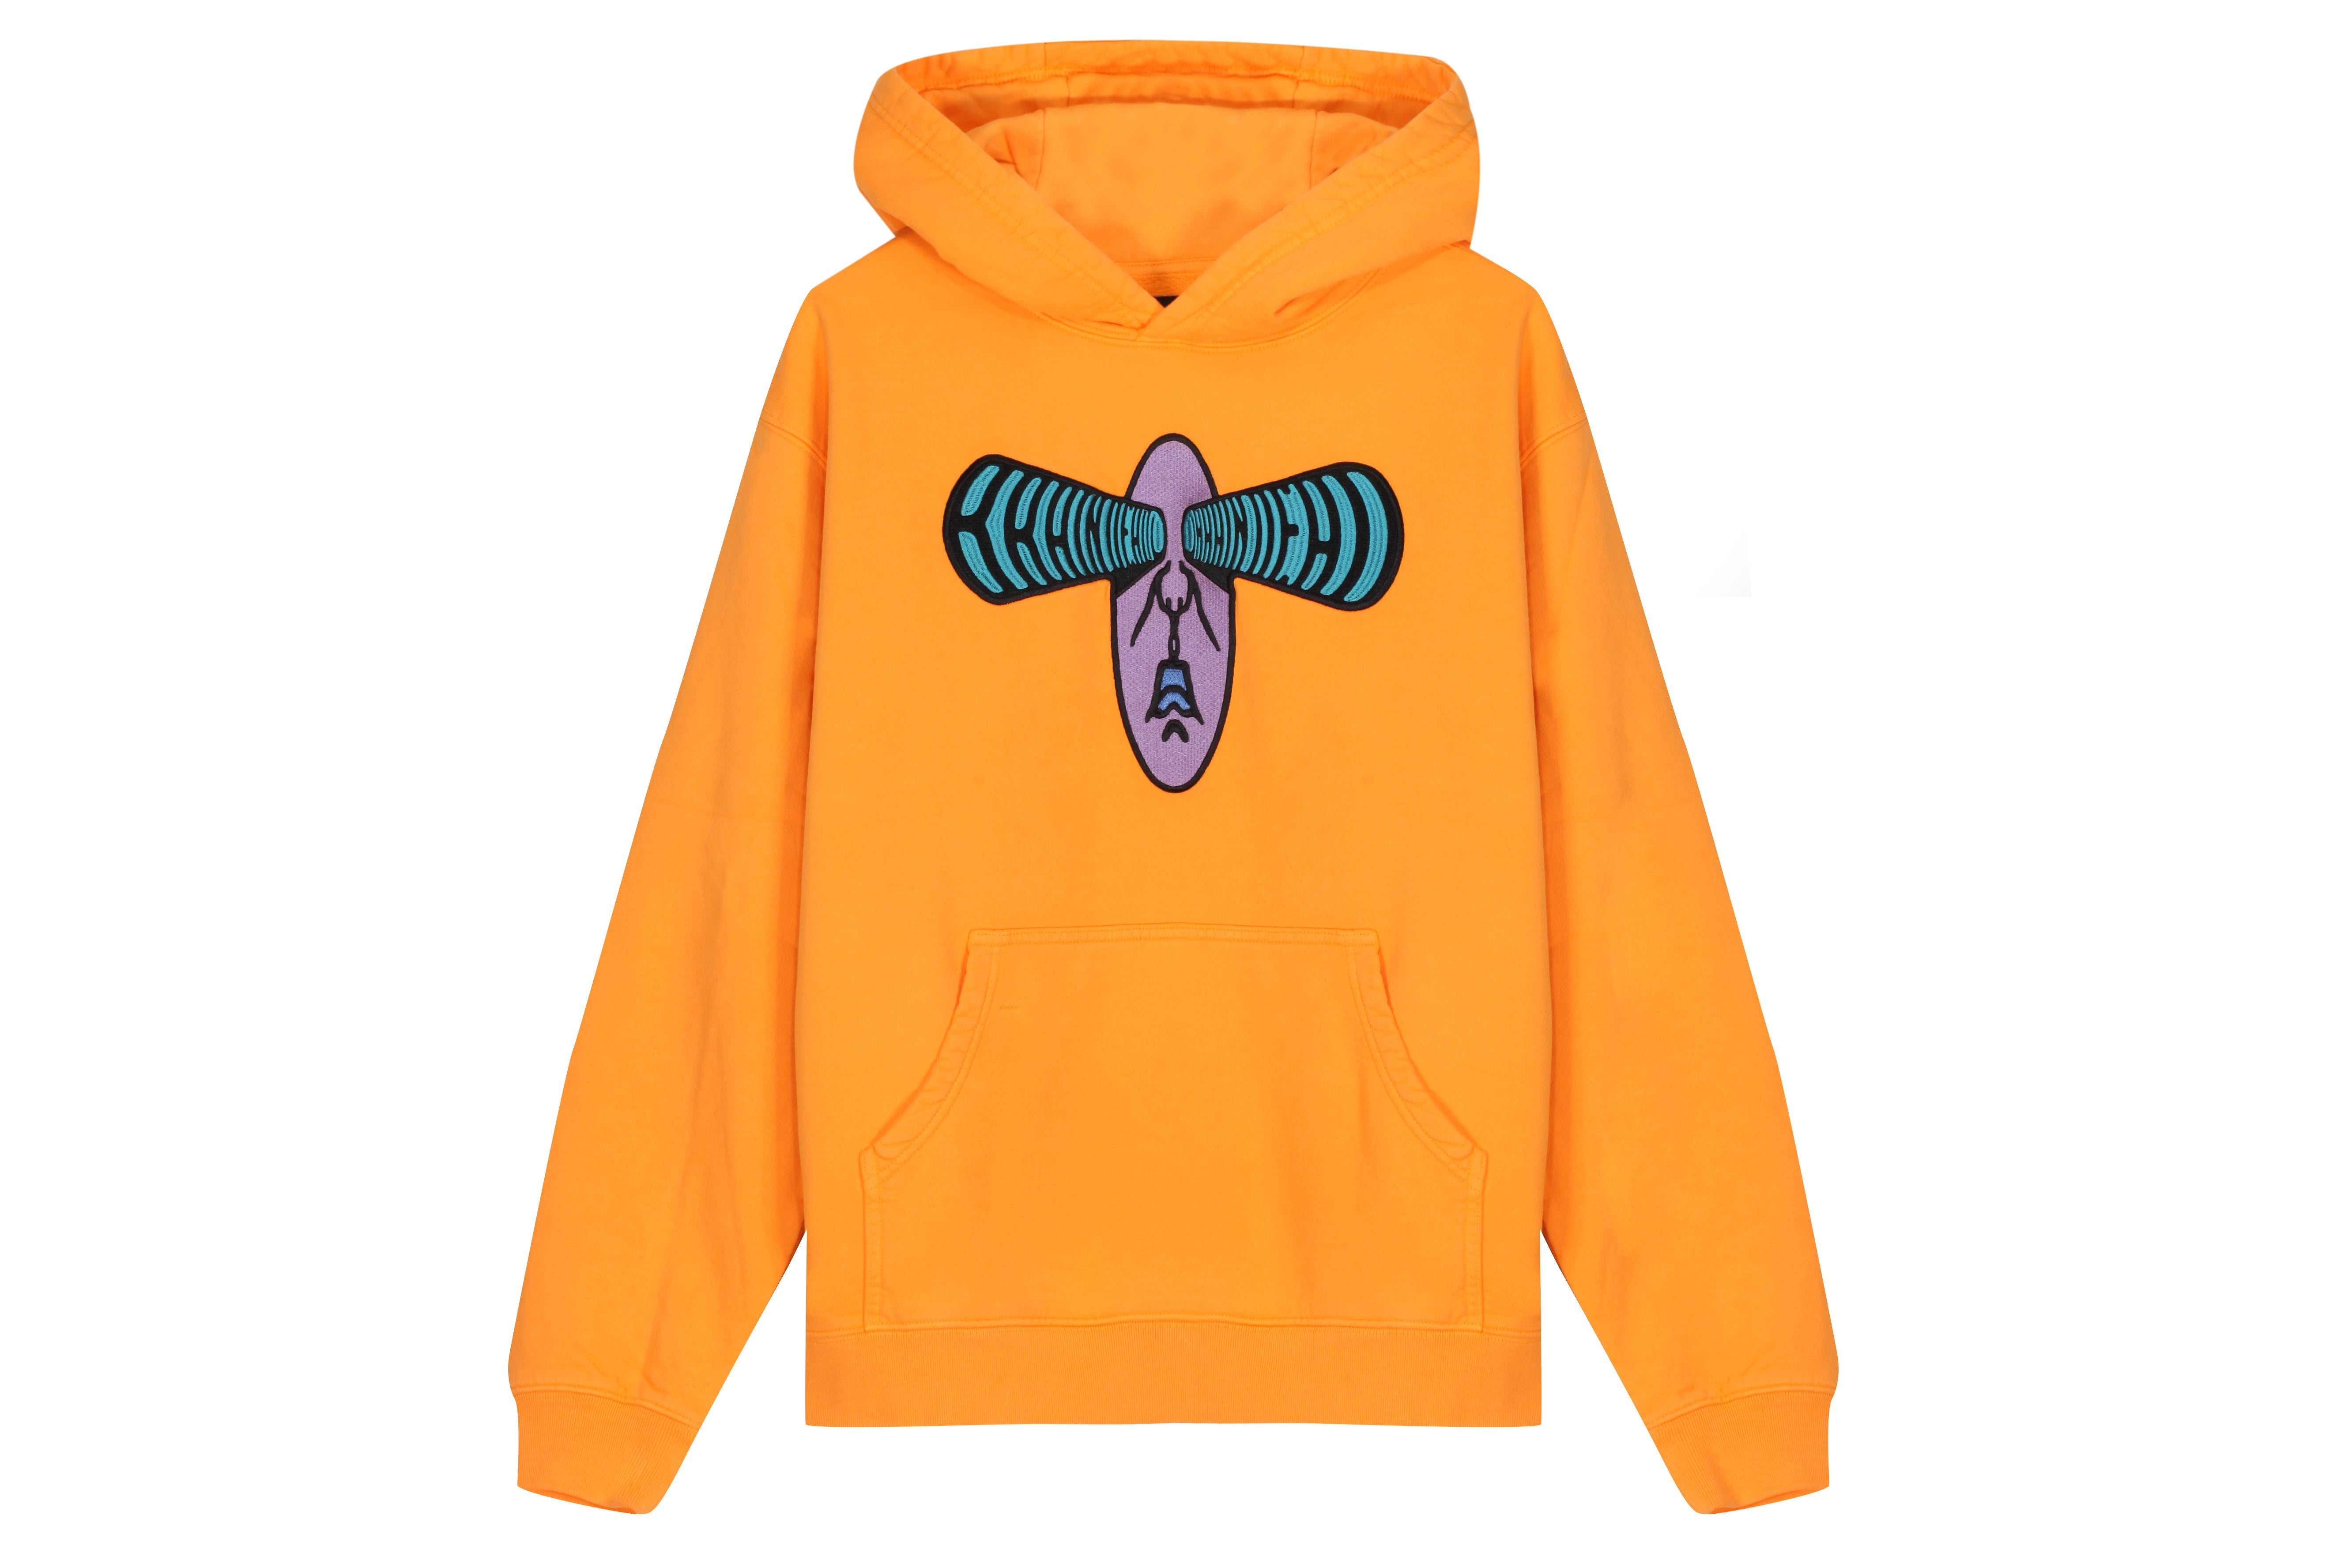 Braindead Bulging Emroidered Hooded Sweatshirt